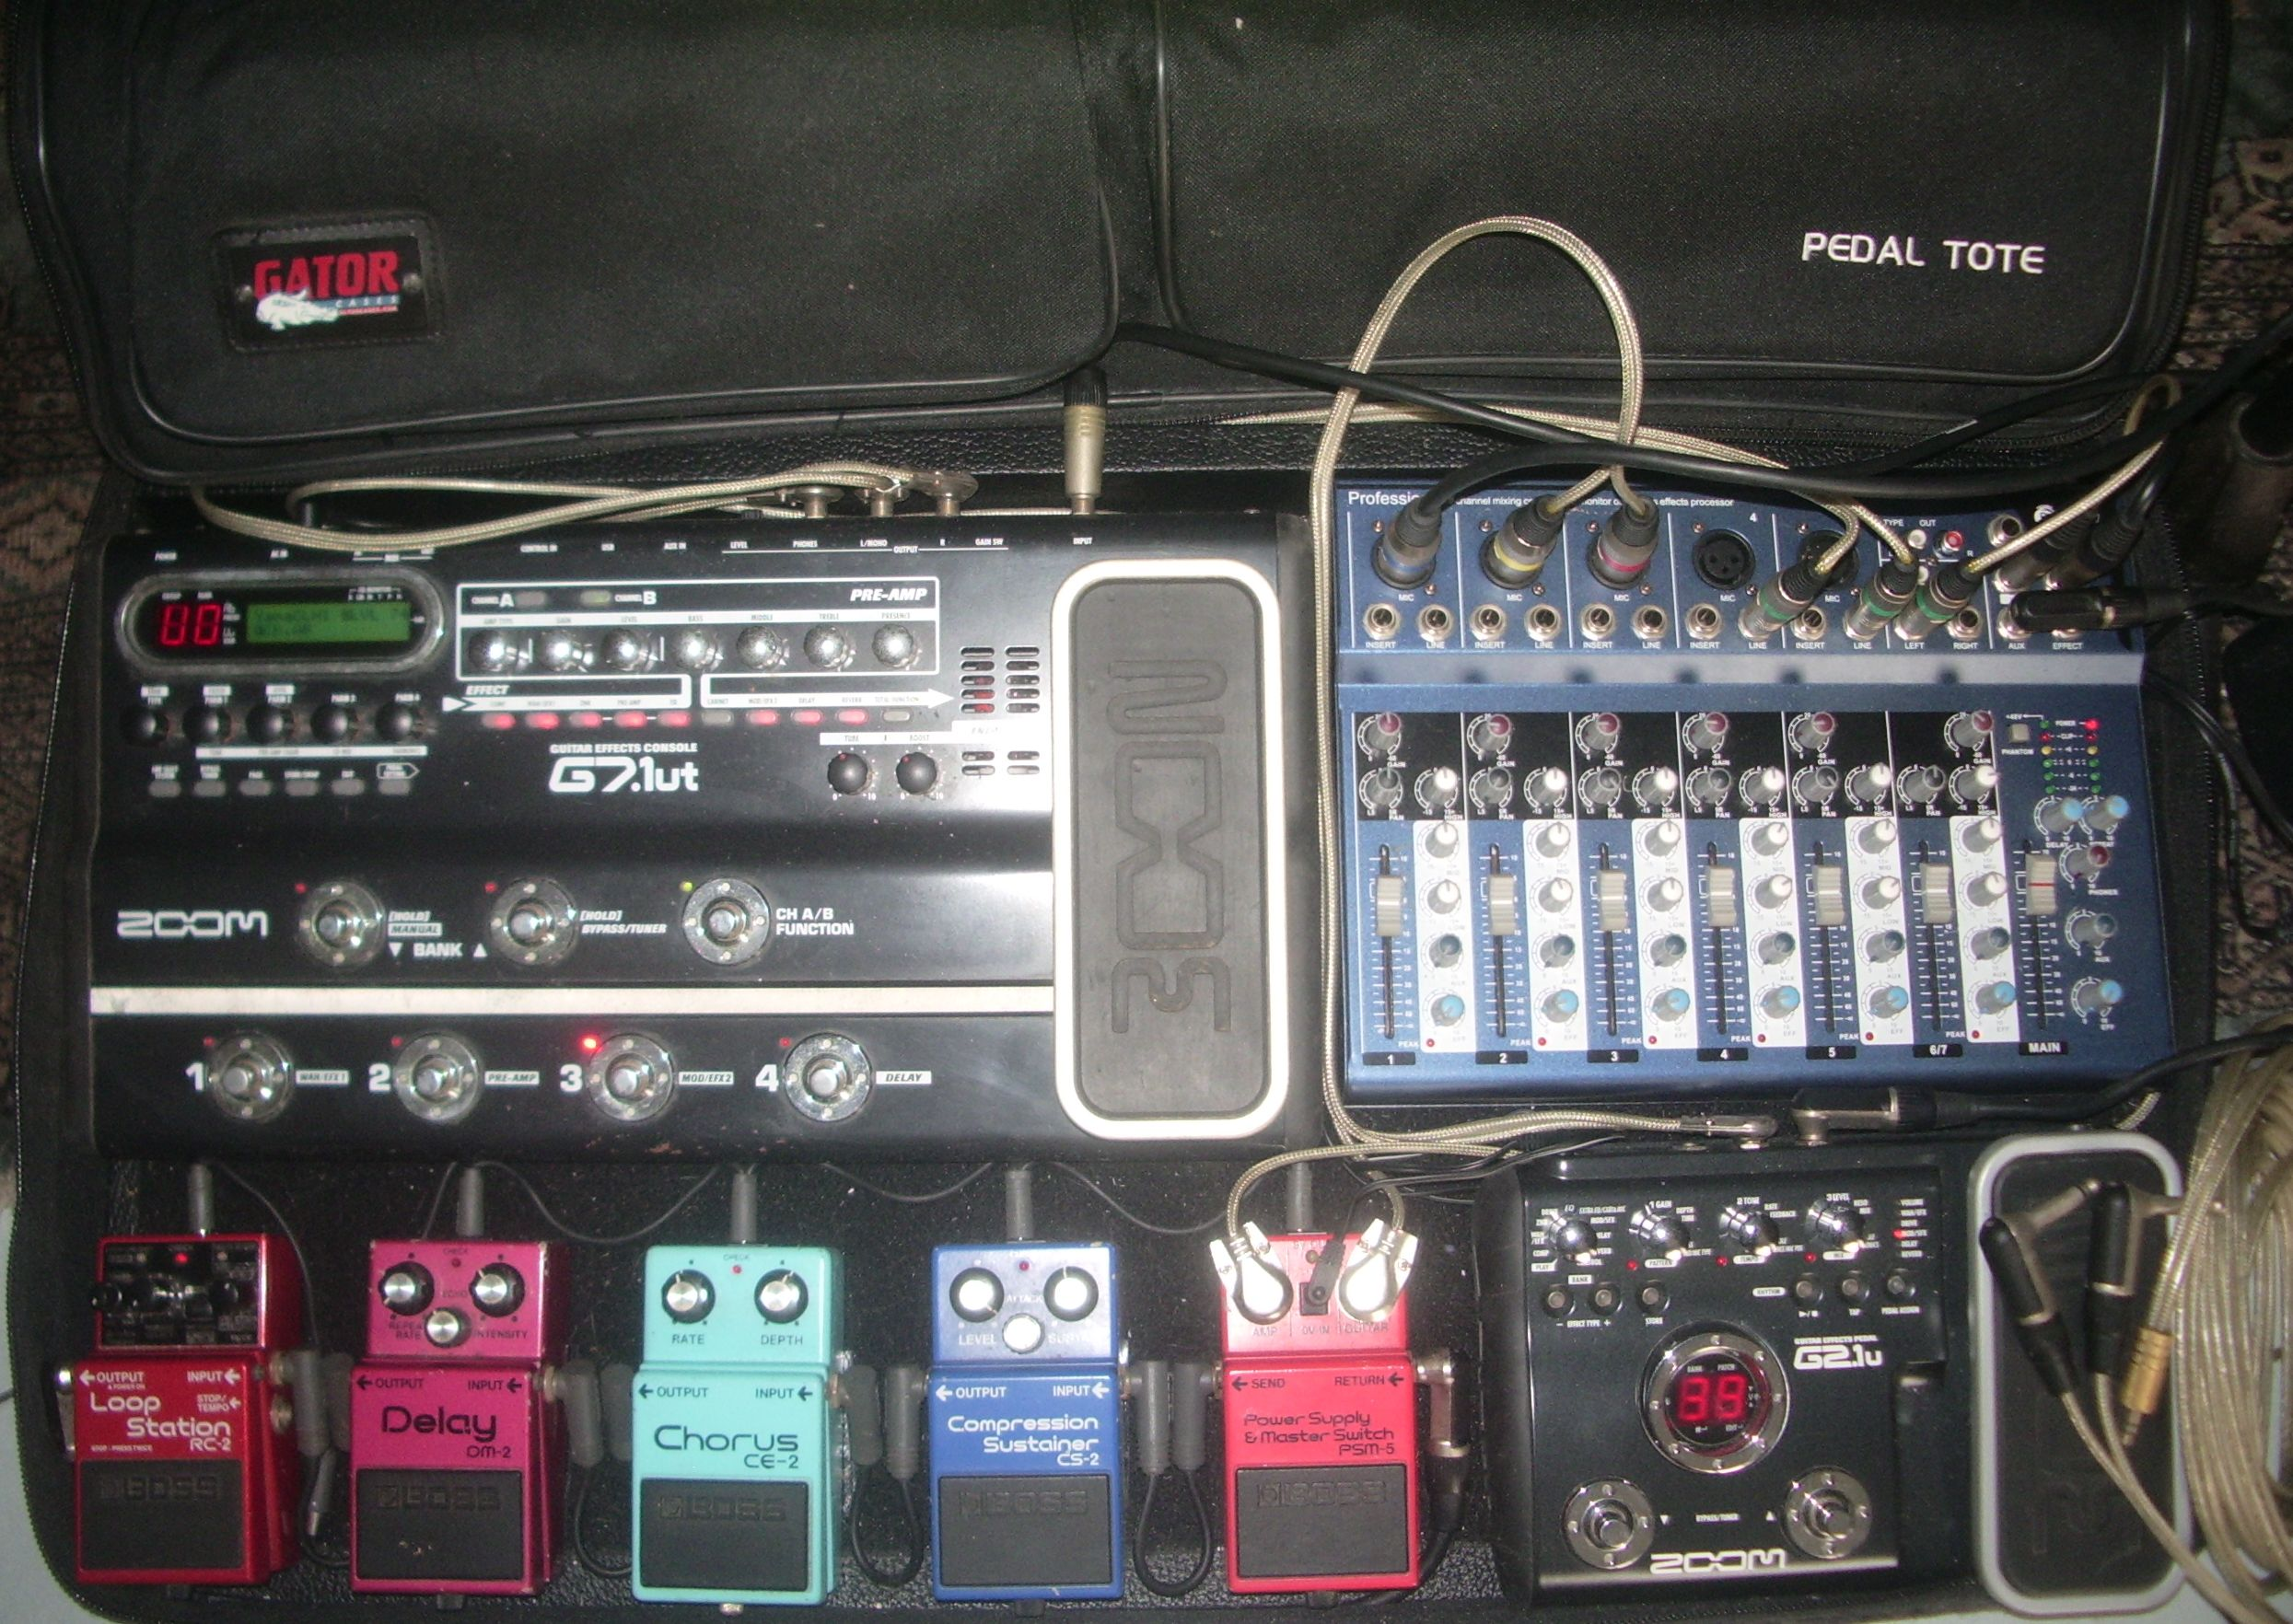 using guitar effects pedals for vocals etc gearslutz pro audio community. Black Bedroom Furniture Sets. Home Design Ideas